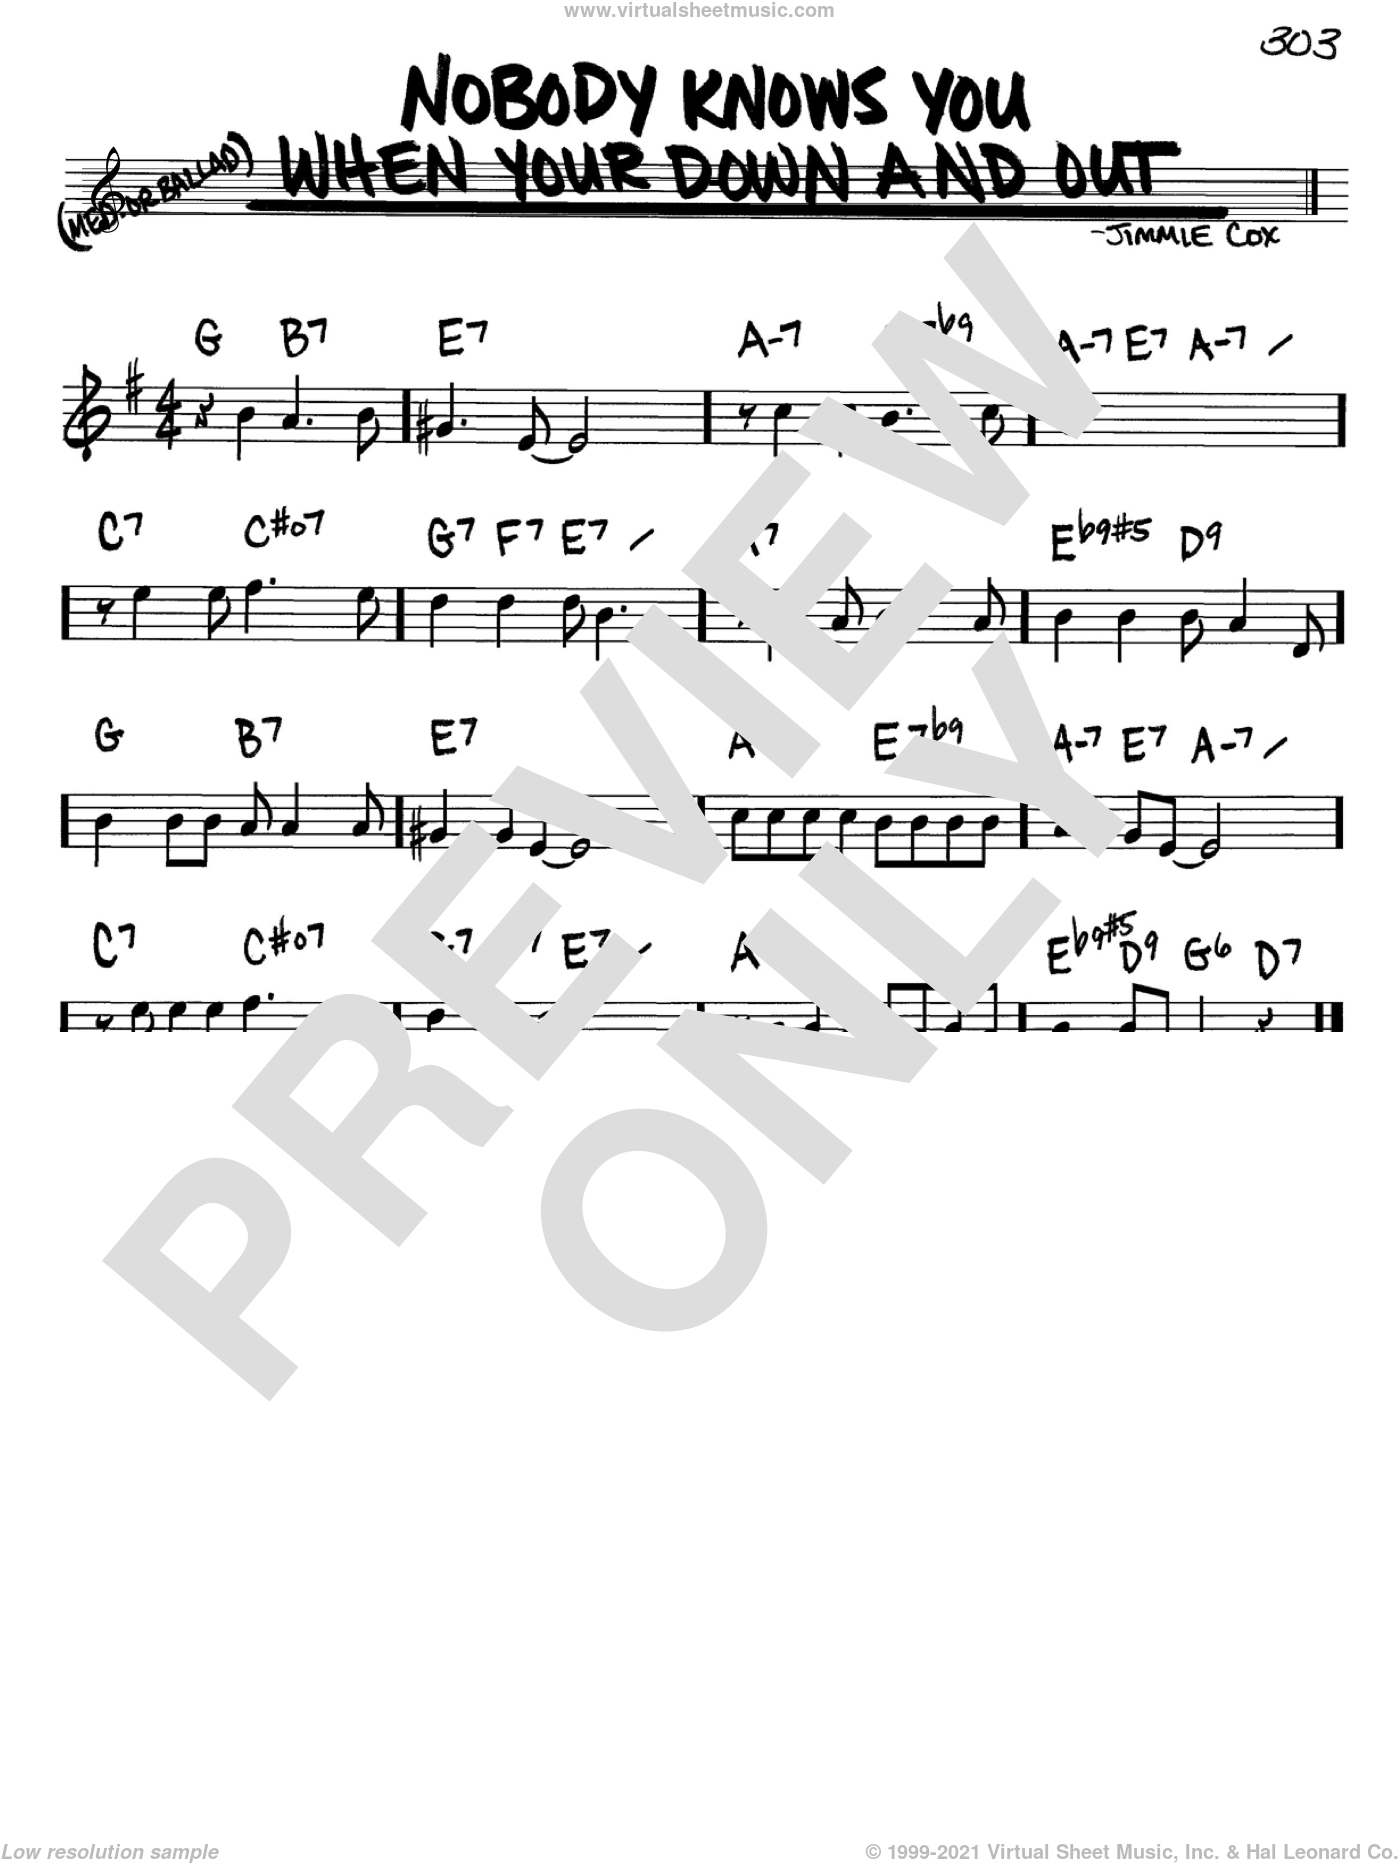 Nobody Knows You When You're Down And Out sheet music for voice and other instruments (in Bb) by Jimmie Cox, intermediate